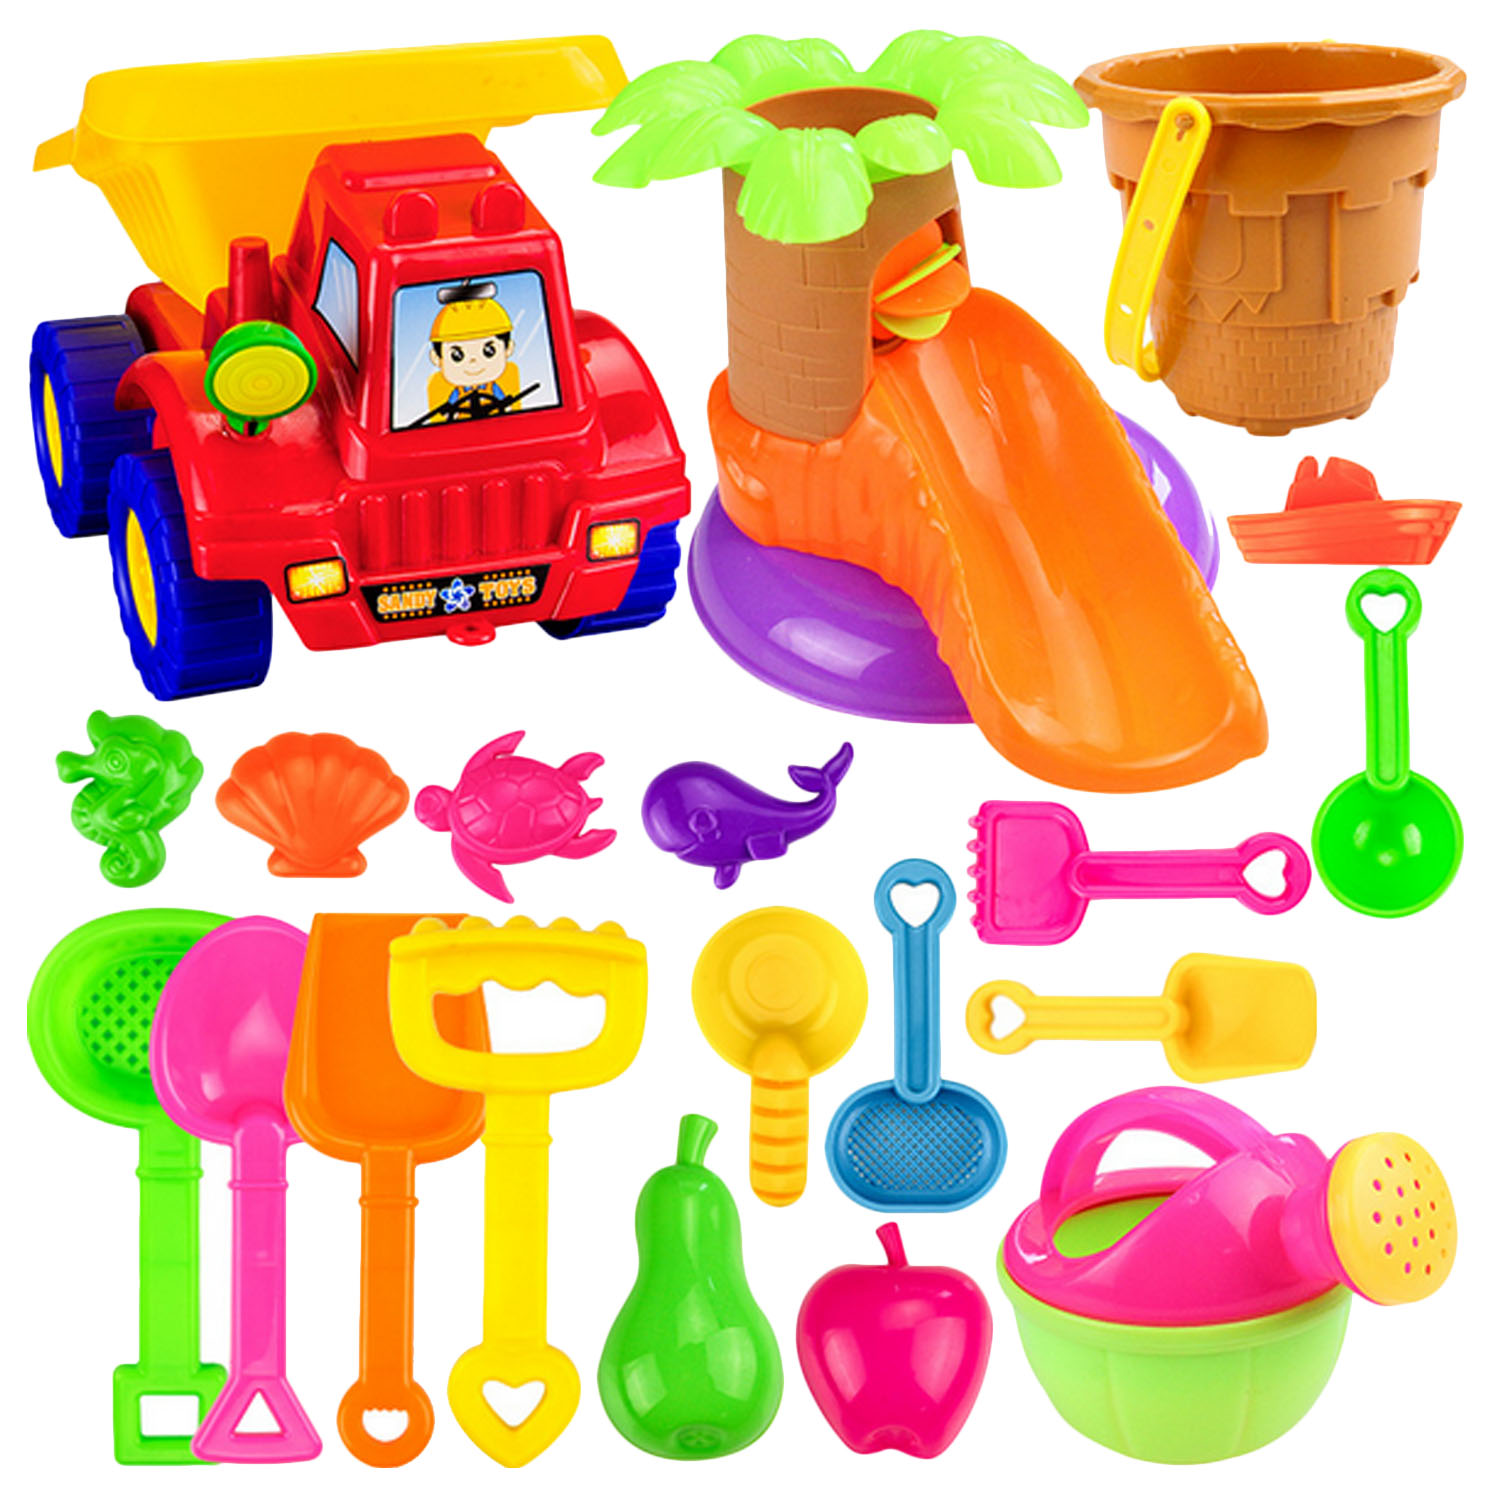 20pcs Kids Beach Sand Sandbeach Set Including Truck Castle Bucket Spade Shovel Rake Mini Sliding Watering Can Sand Mold Toy